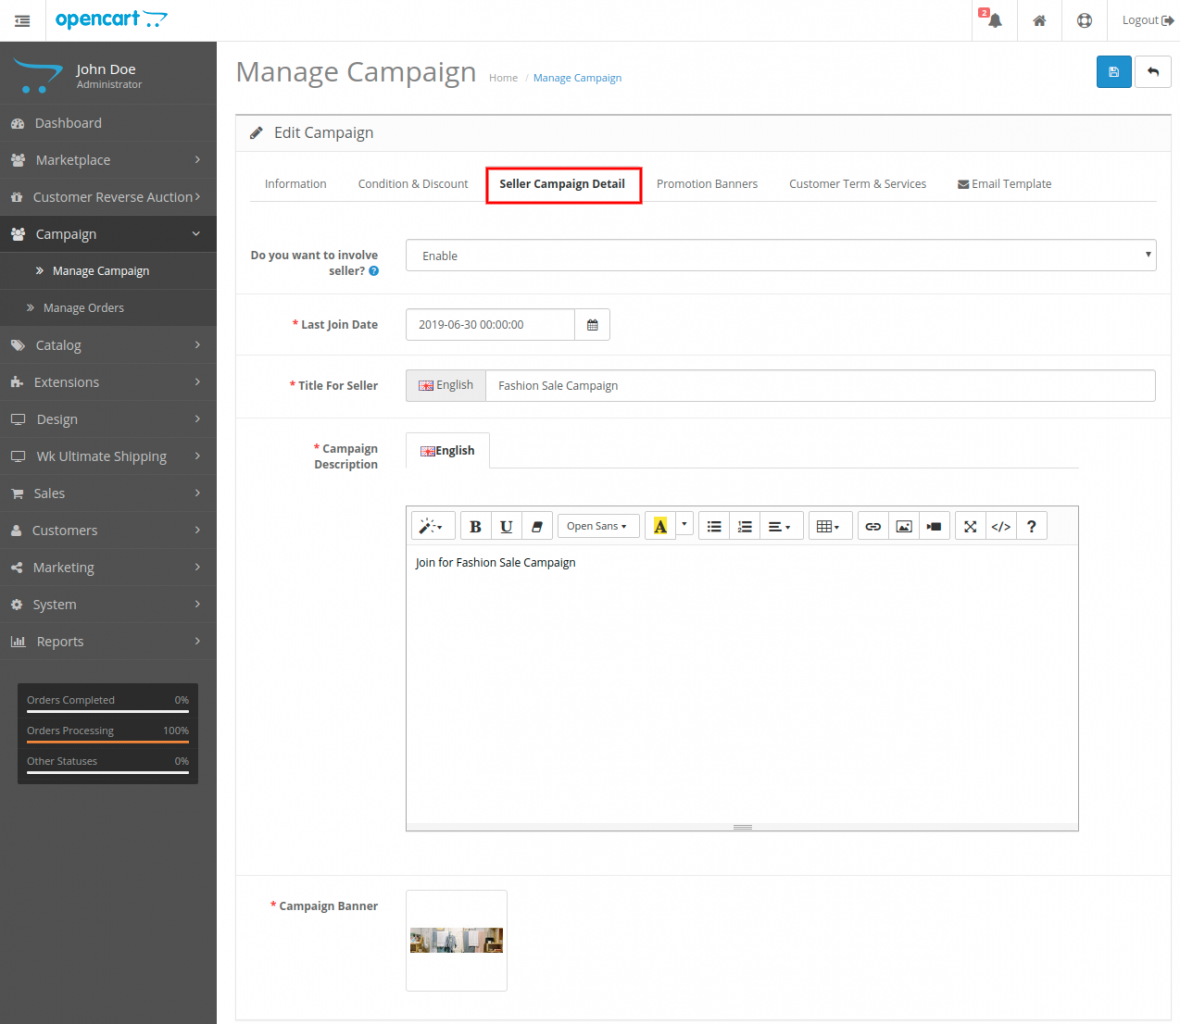 webkul-opencart-marketplace-campaign-manage-seller-campaign-details